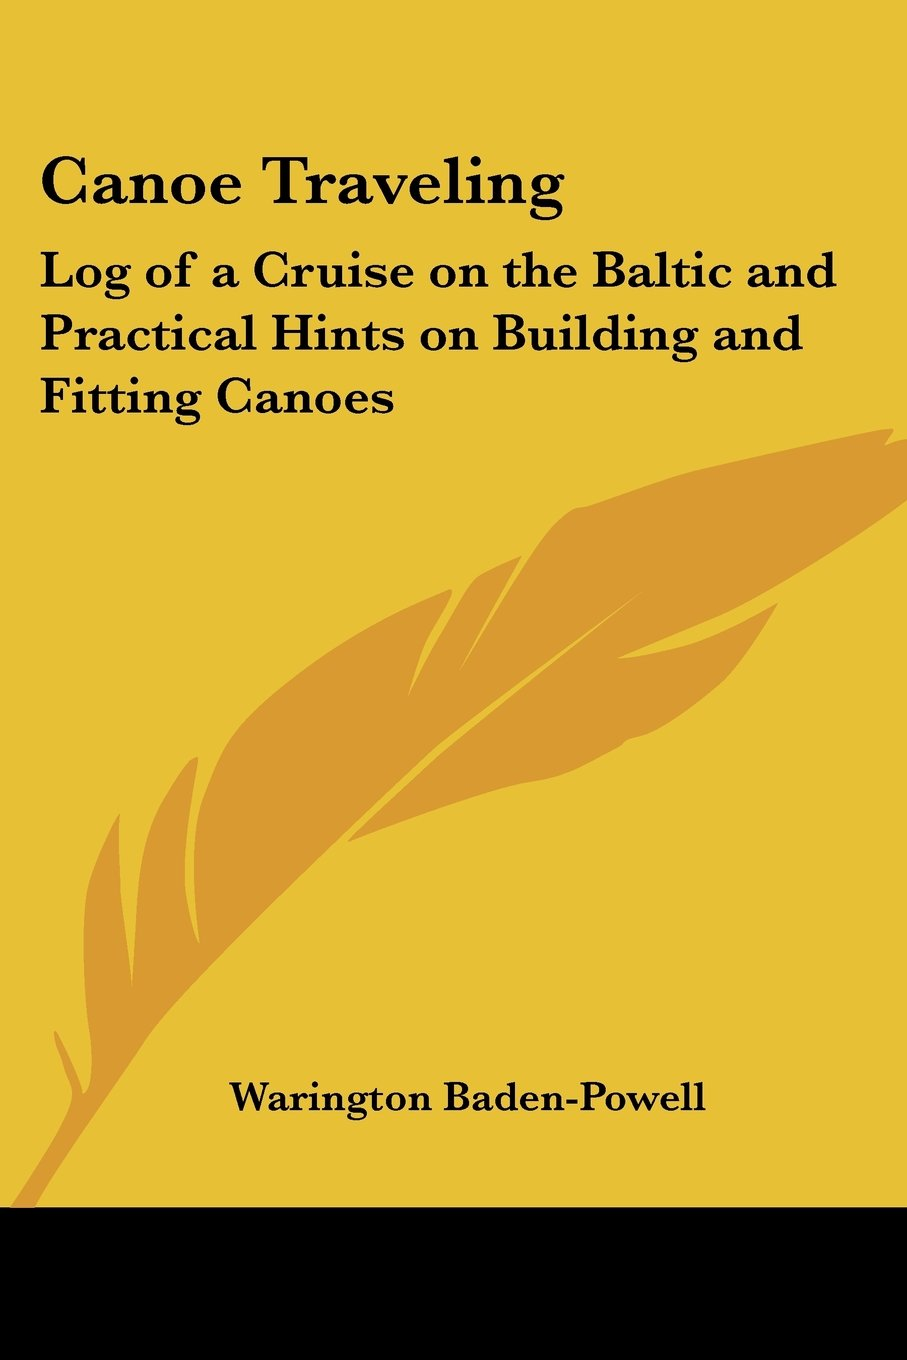 Canoe Traveling: Log of a Cruise on the Baltic and Practical Hints on Building and Fitting Canoes